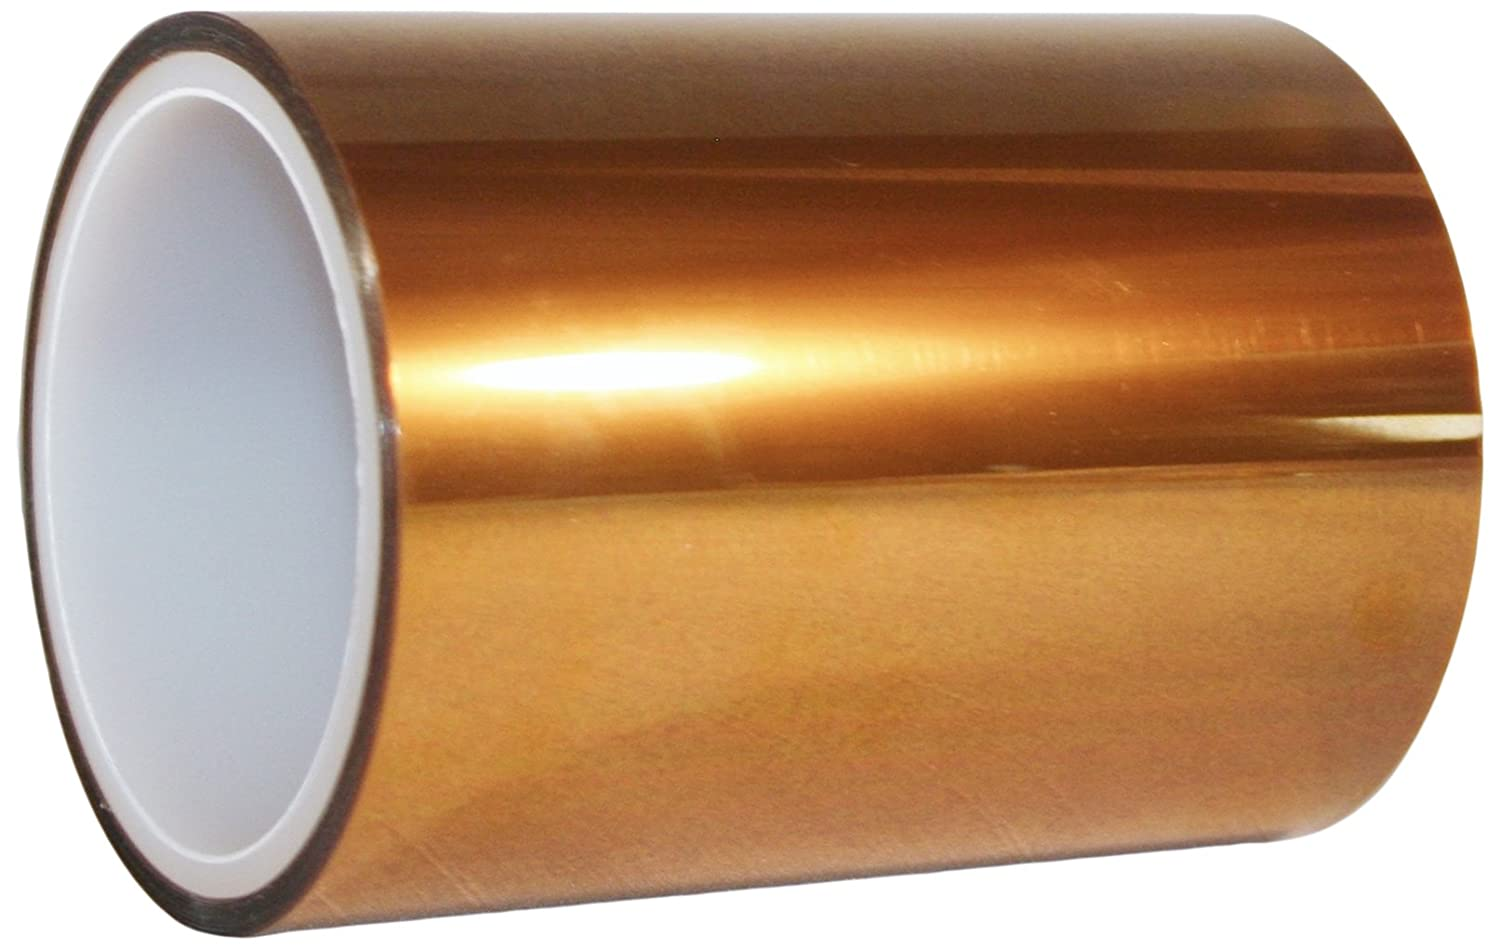 Maxi MAXI-3D-835-09 Amber Polyimide Electrical Tape, 500 Degrees F Maximum Temperature, 11000 Dielectric Strength, 36 yd Length x 9 yd Width